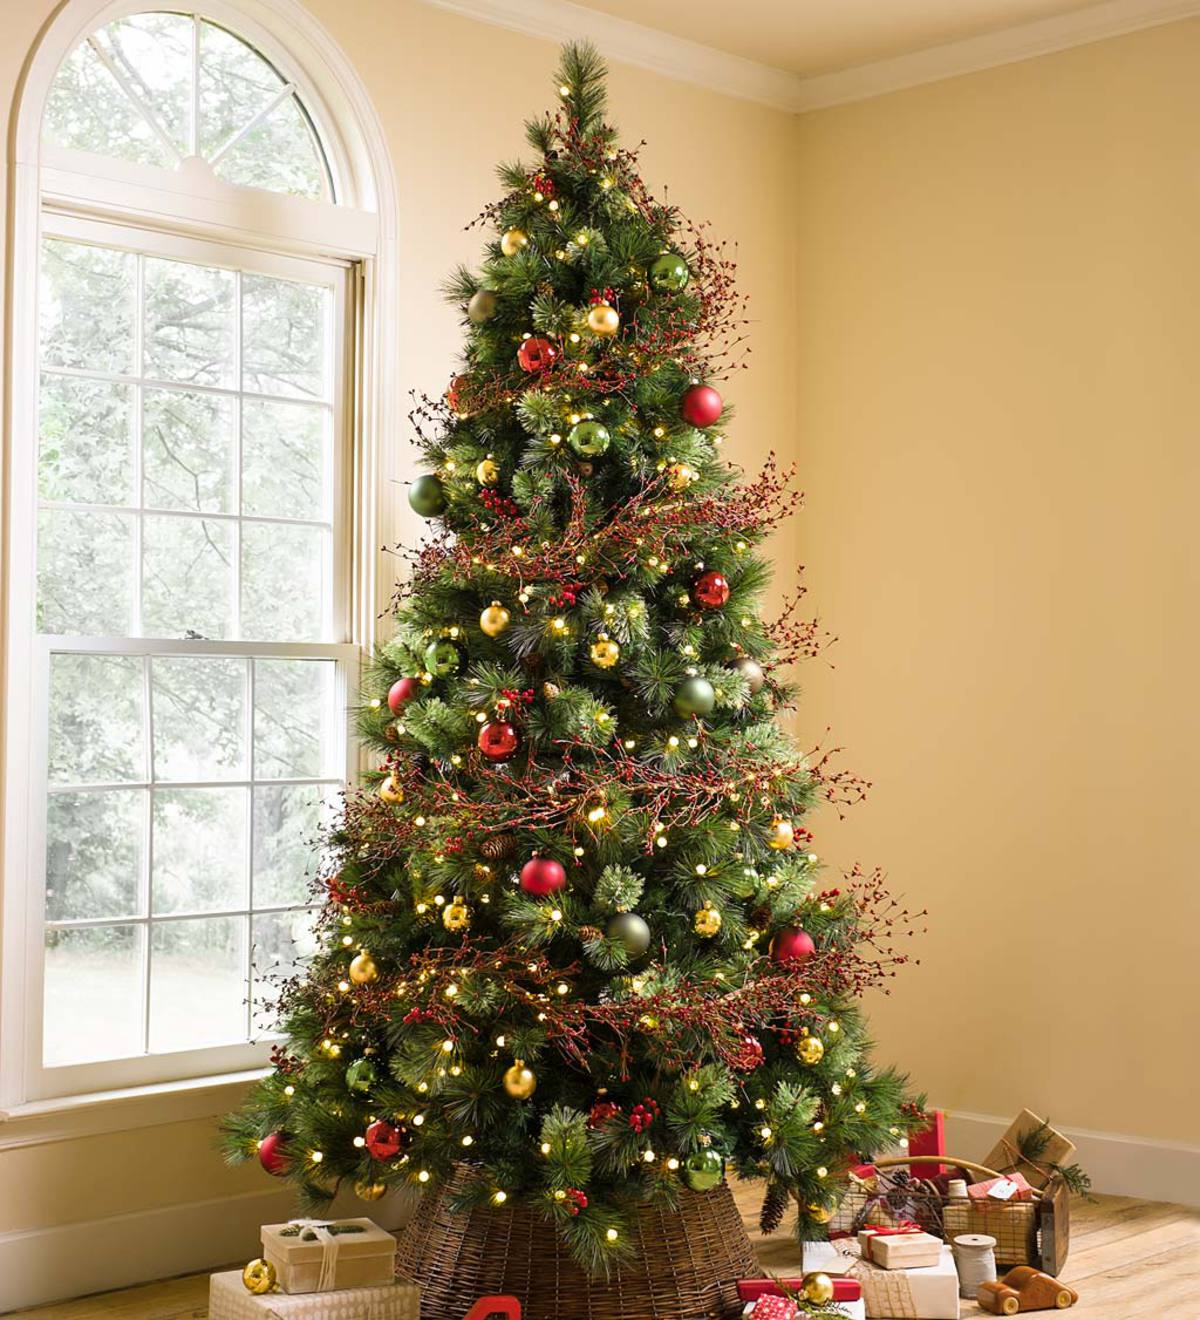 Red Red Pine Christmas Tree: Pre-Lit Madison Christmas Trees With Pine Cones And